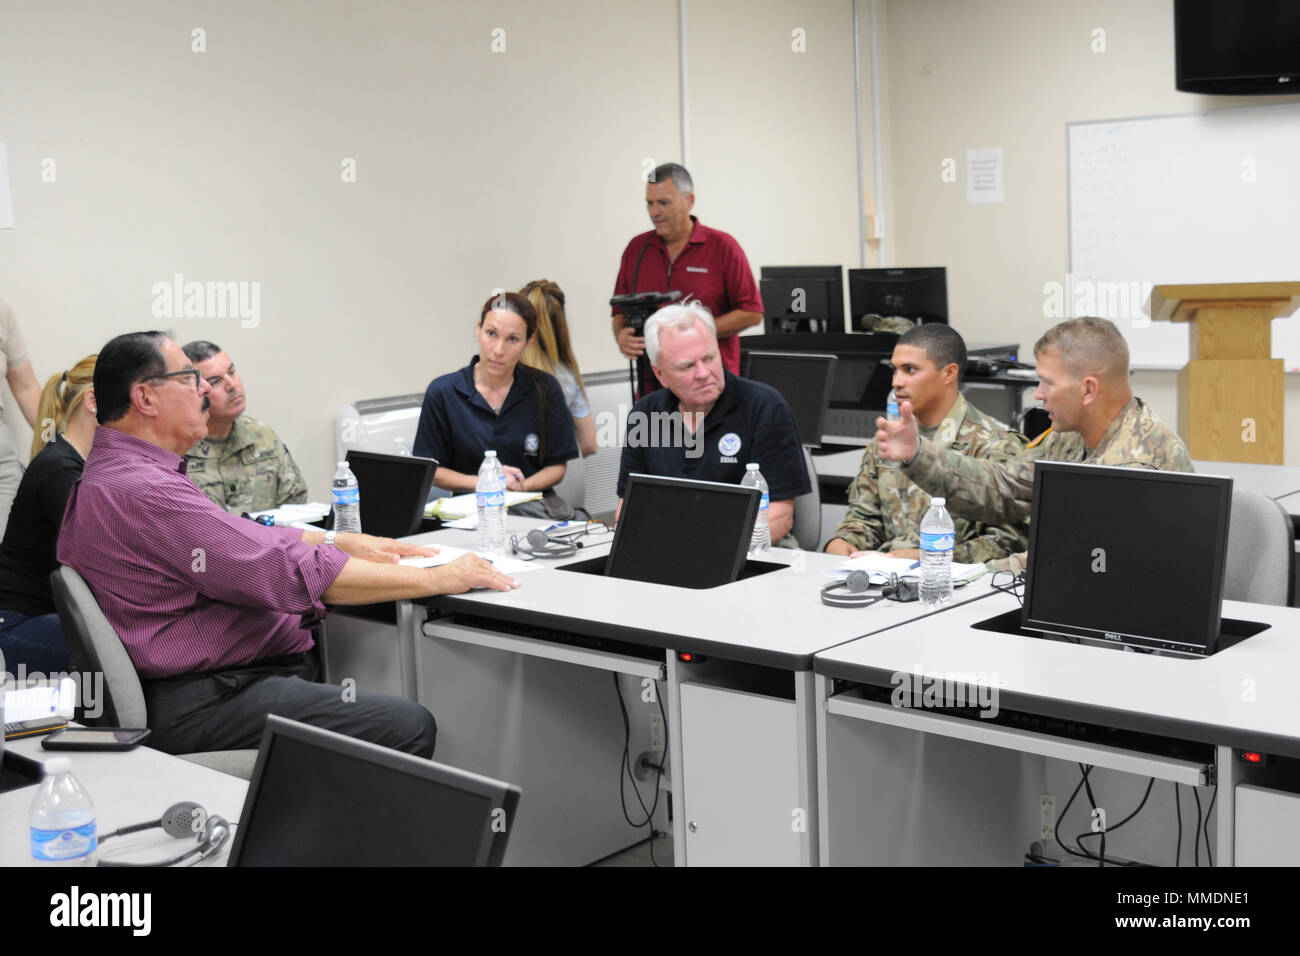 Lt. Gen. Jeffrey S. Buchanan, Commander, U.S. Army North, and officials from the Federal Emergency Management Agency met with officials from the municipality of Mayaguez to discuss the ongoing relief efforts in Puerto Rico, Oct. 20, 2017. (U.S. Army National Guard photo by Staff Sgt. Armando Vasquez/Released) - Stock Image